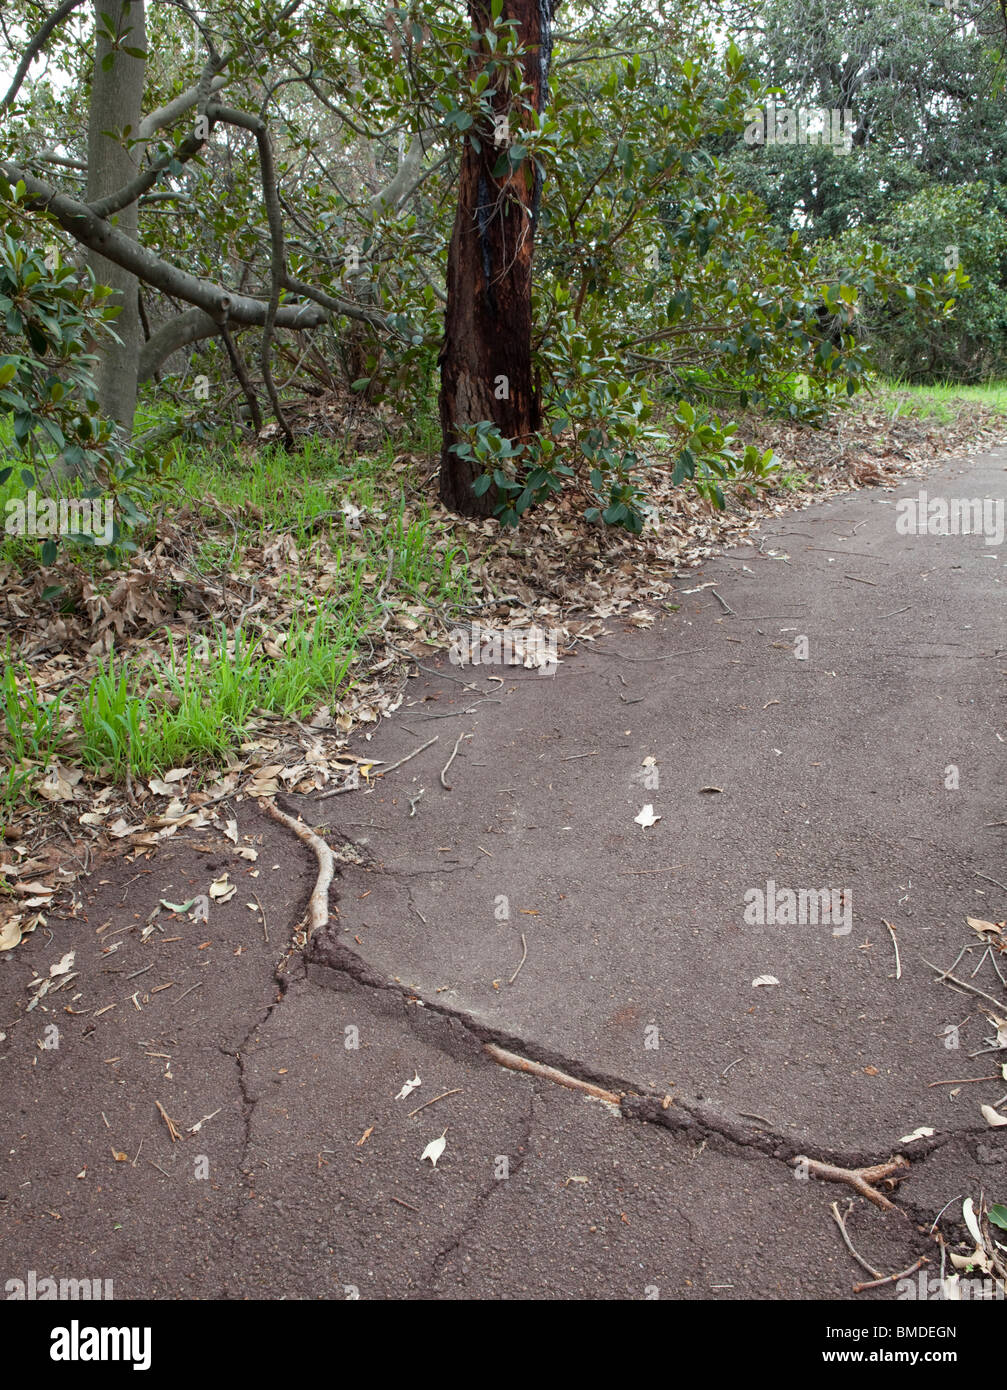 Tree root protruding through a path. - Stock Image